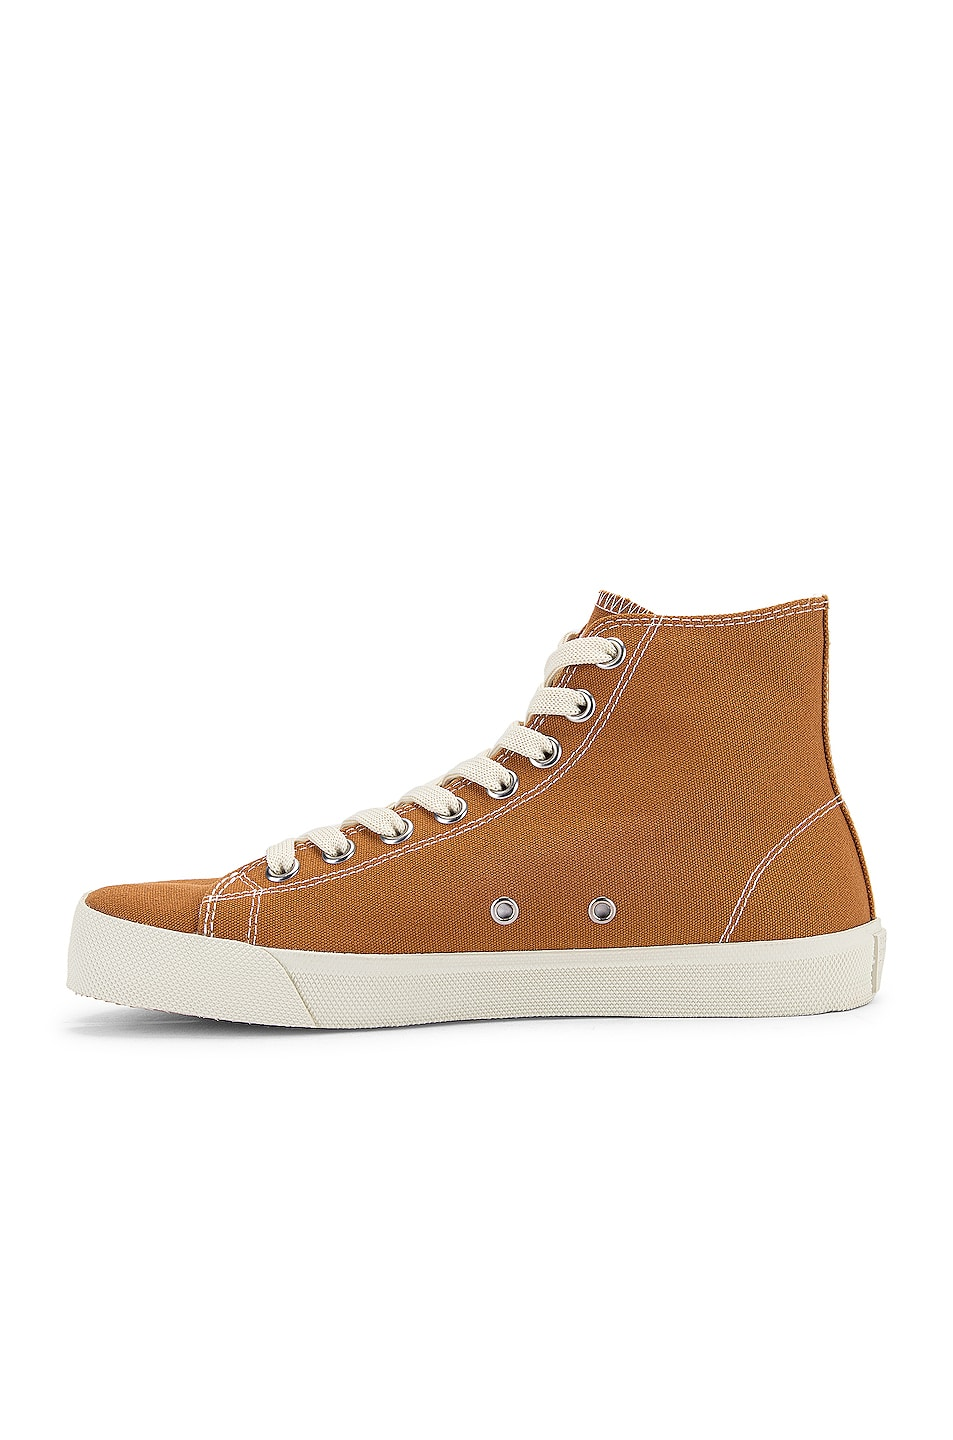 Image 5 of Maison Margiela Tabi High Top Canvas Sneakers in Nude